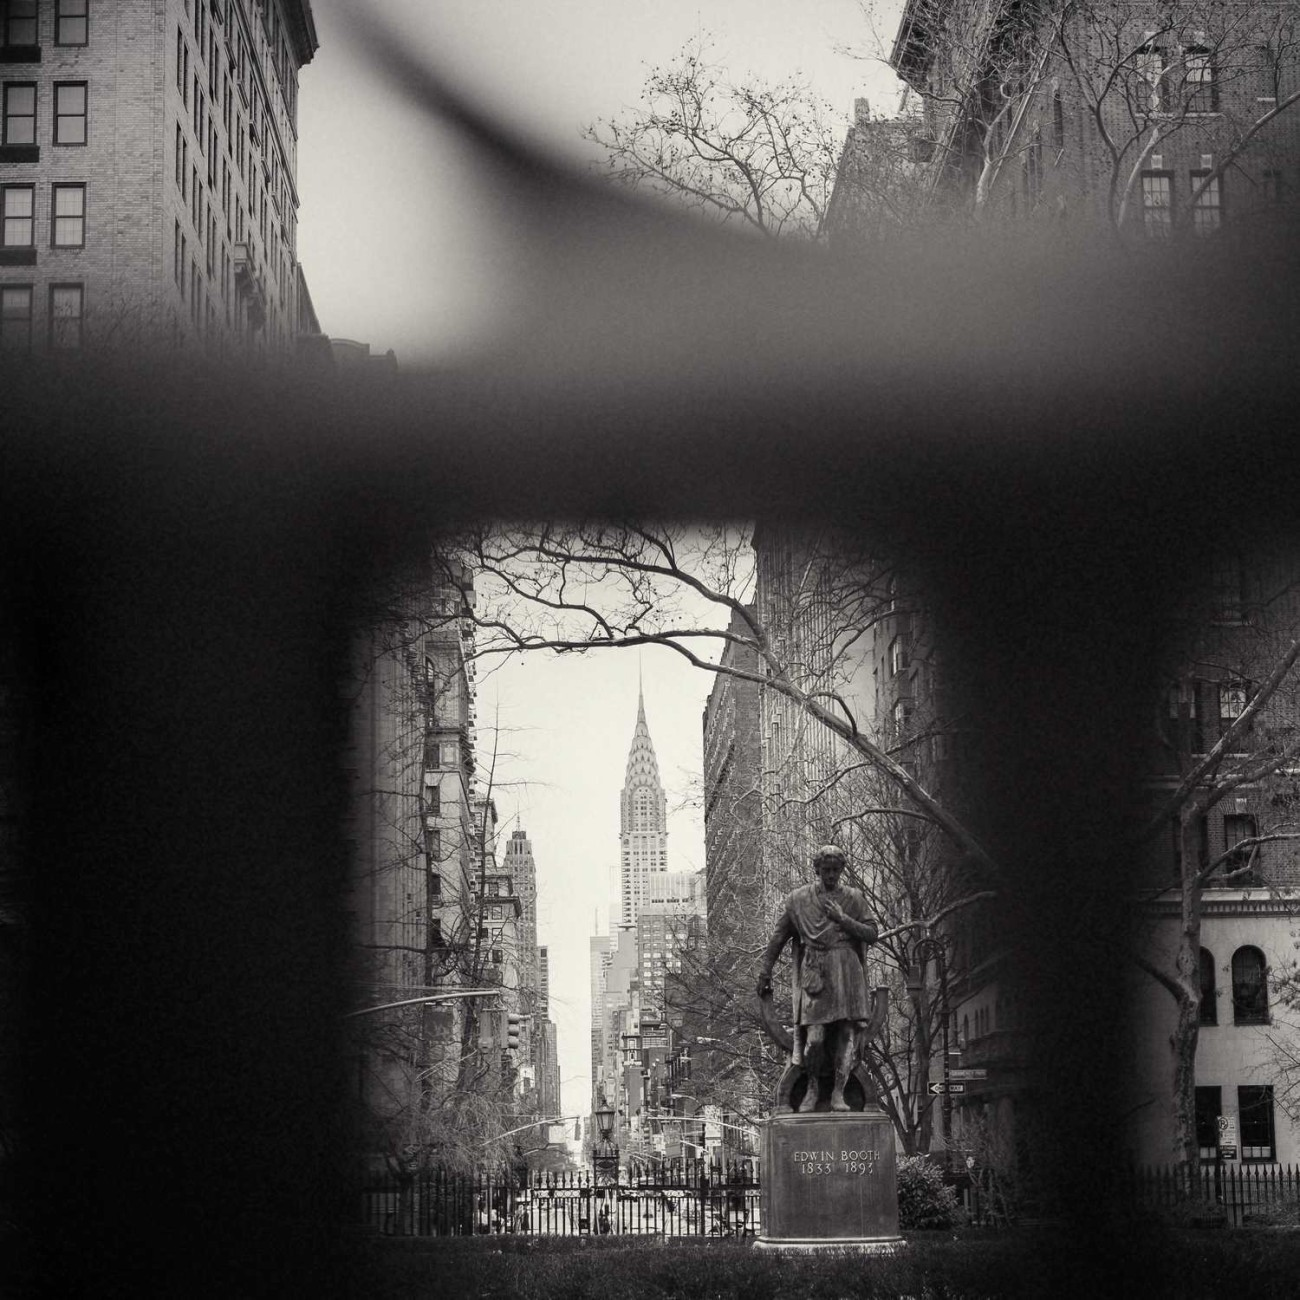 Chrysler Building from Gramercy Park, New York, 2014